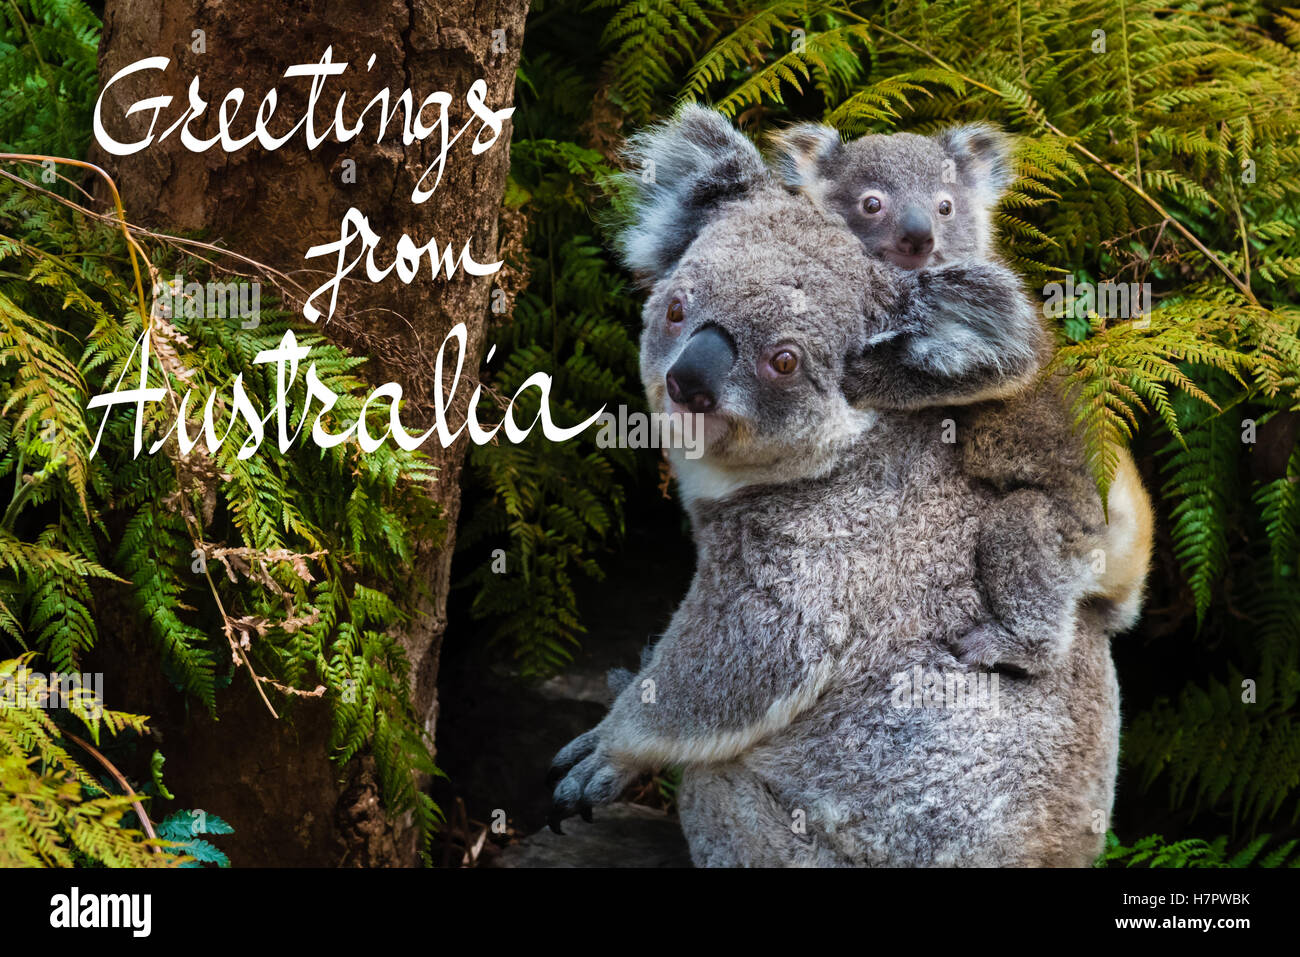 Greeting from australia stock photos greeting from australia stock australian koala bear native animal with baby on the back and greetings from australia text m4hsunfo